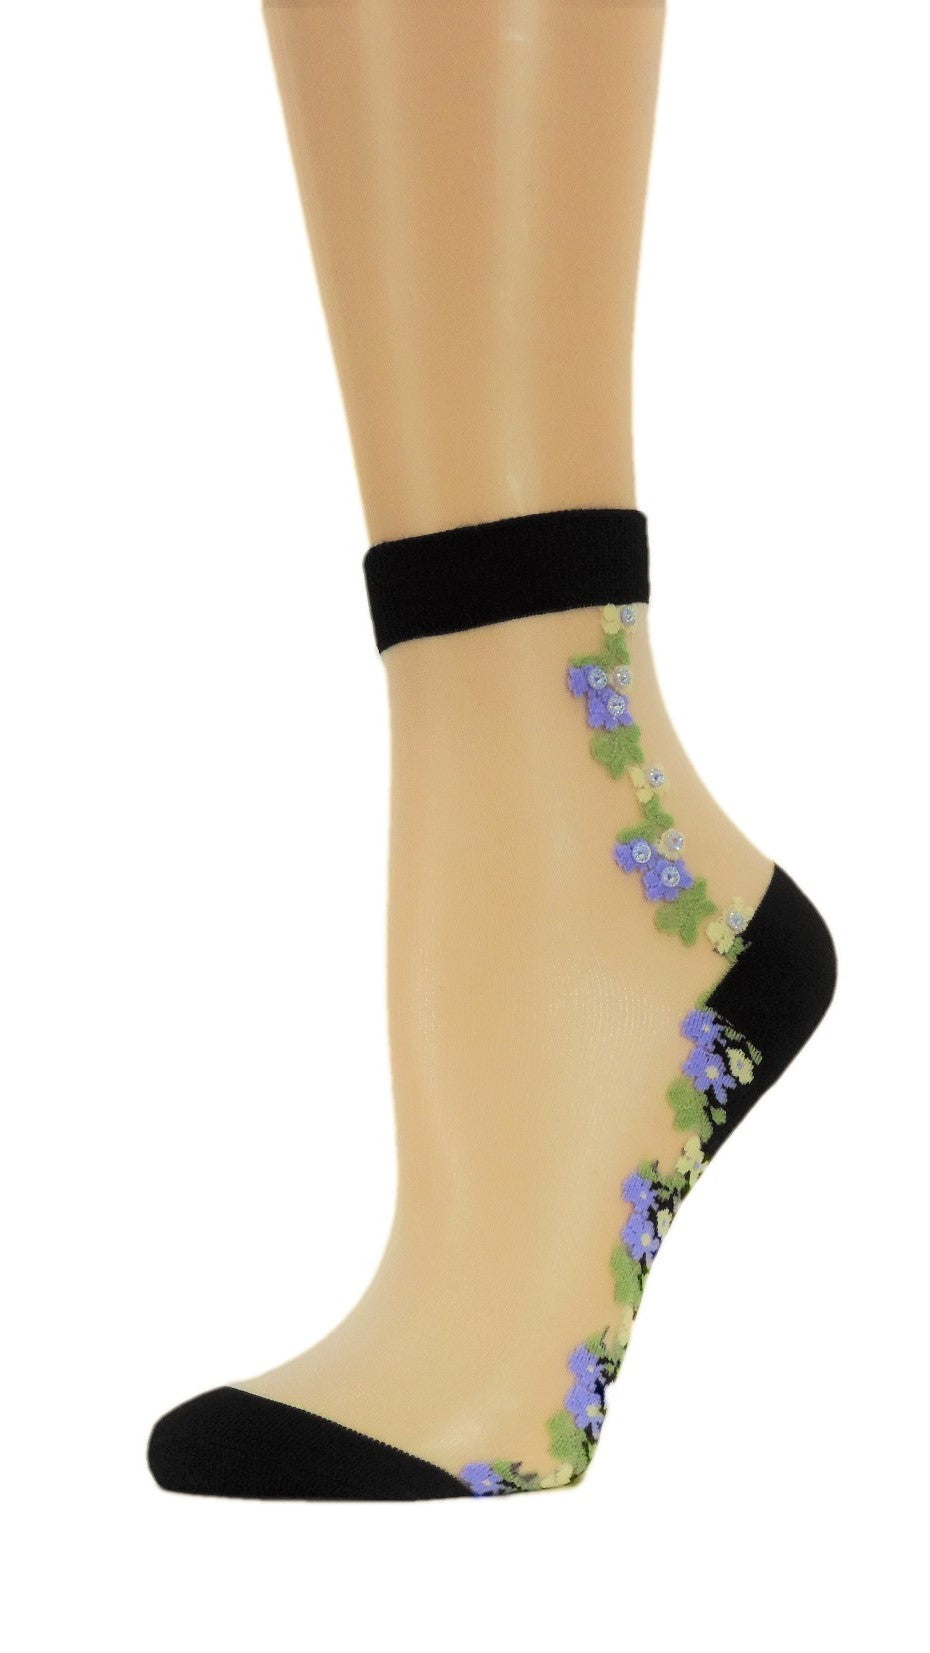 Wild Purple Flowers Custom Sheer Socks with crystals - Global Trendz Fashion®